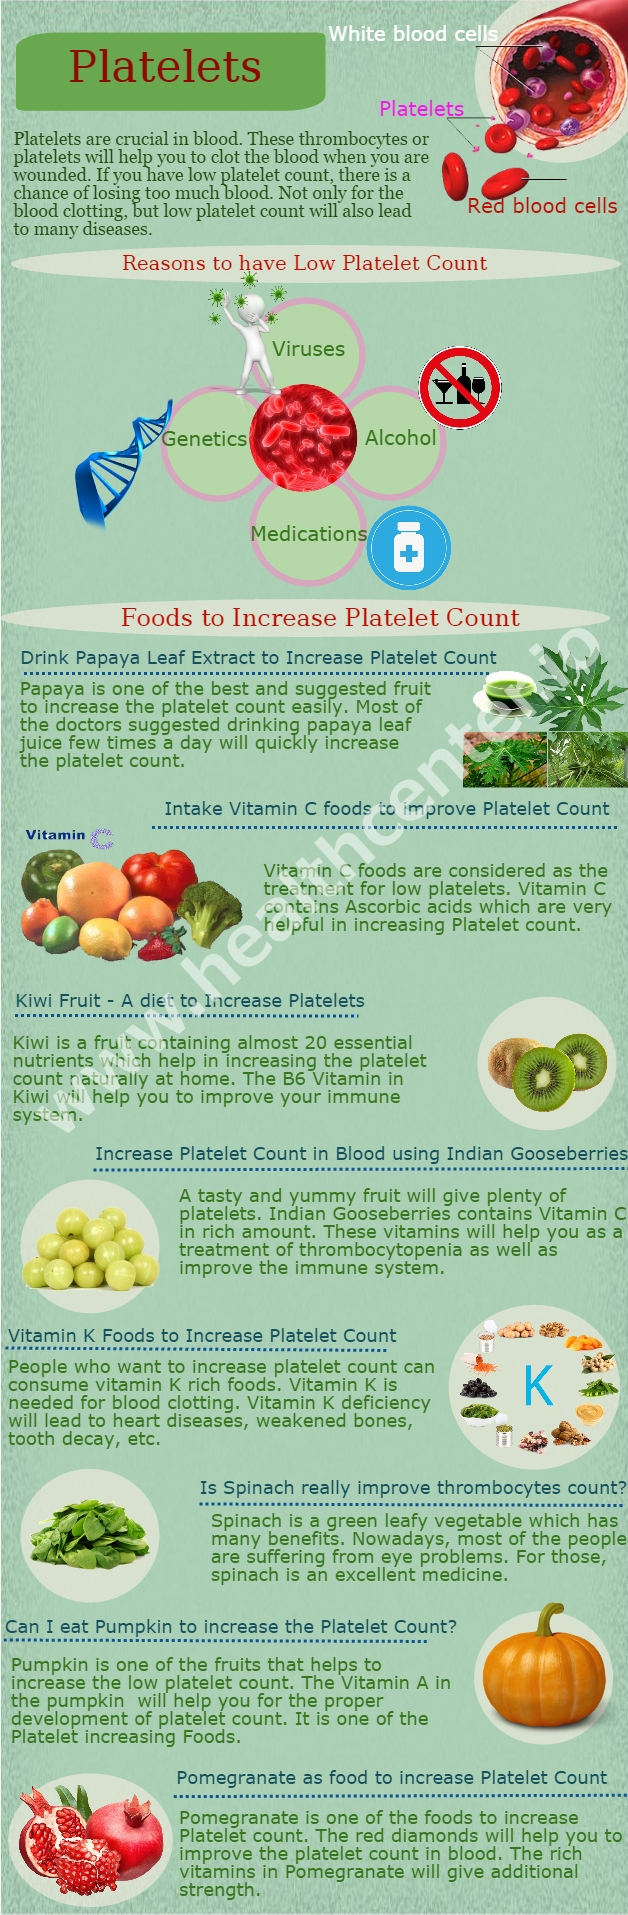 how to raise platelet count